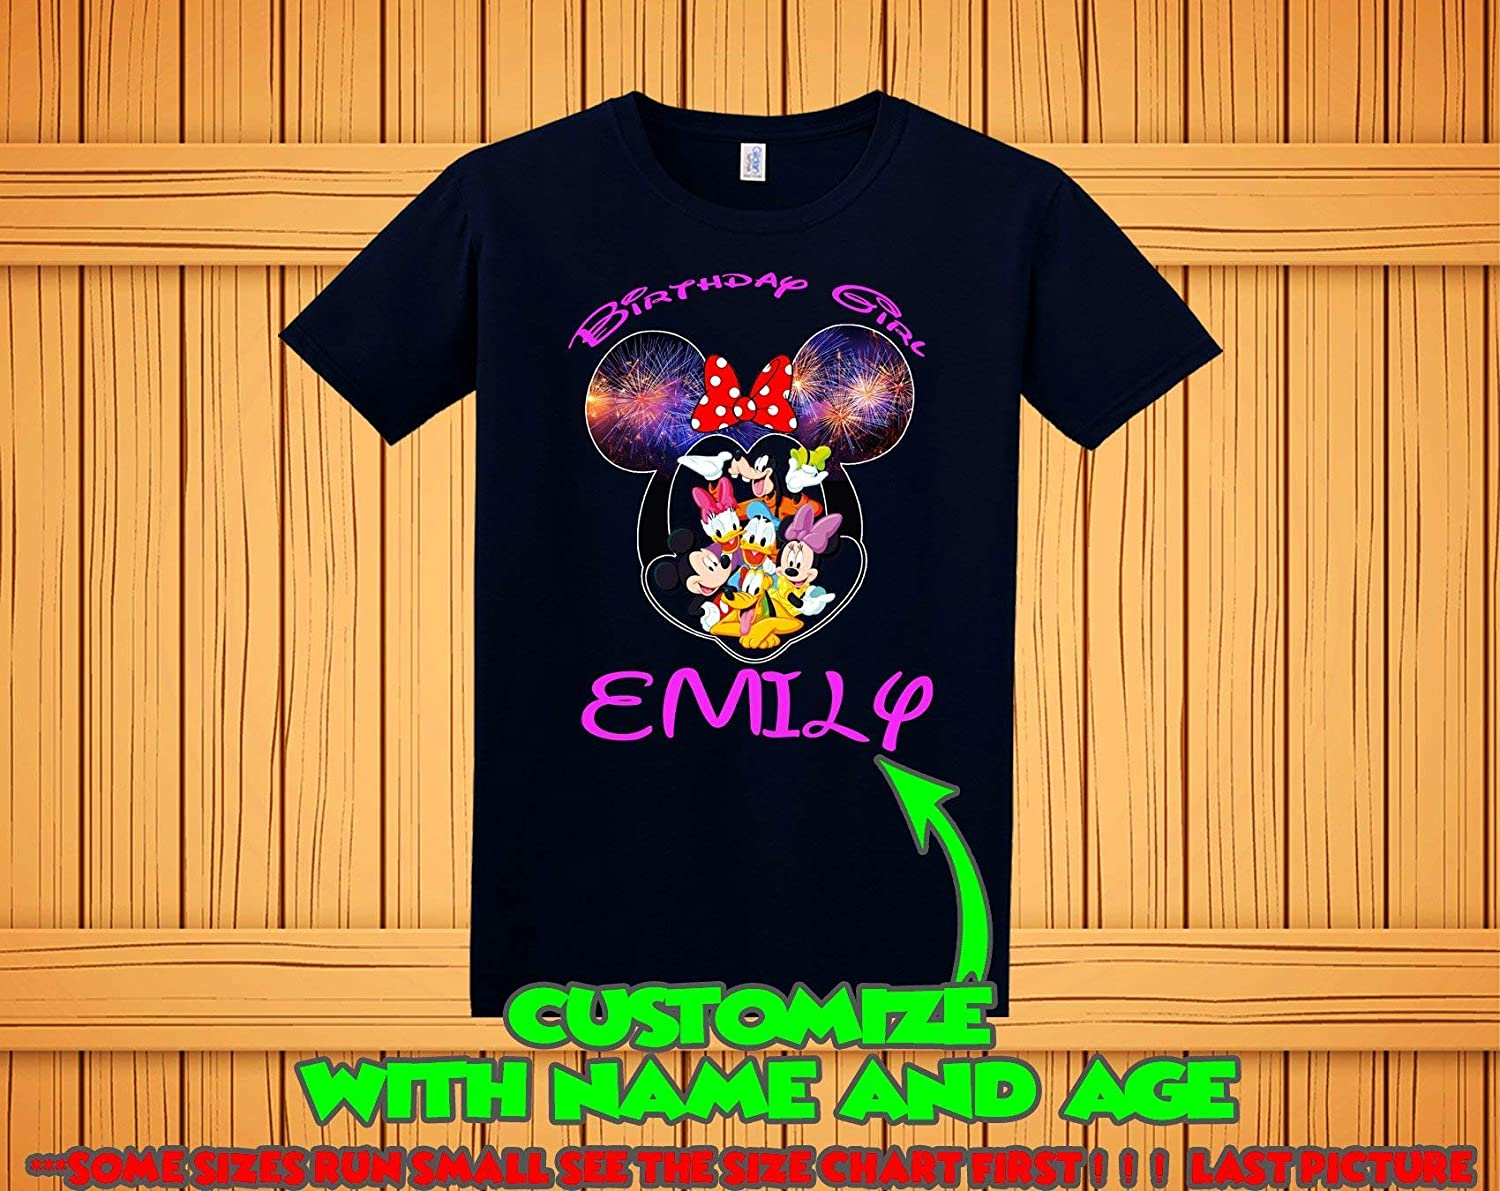 d7e4e093 ... Mickey Minnie Mouse family matching tshirts, birthday Disney family  matching custom t-shirts, ...